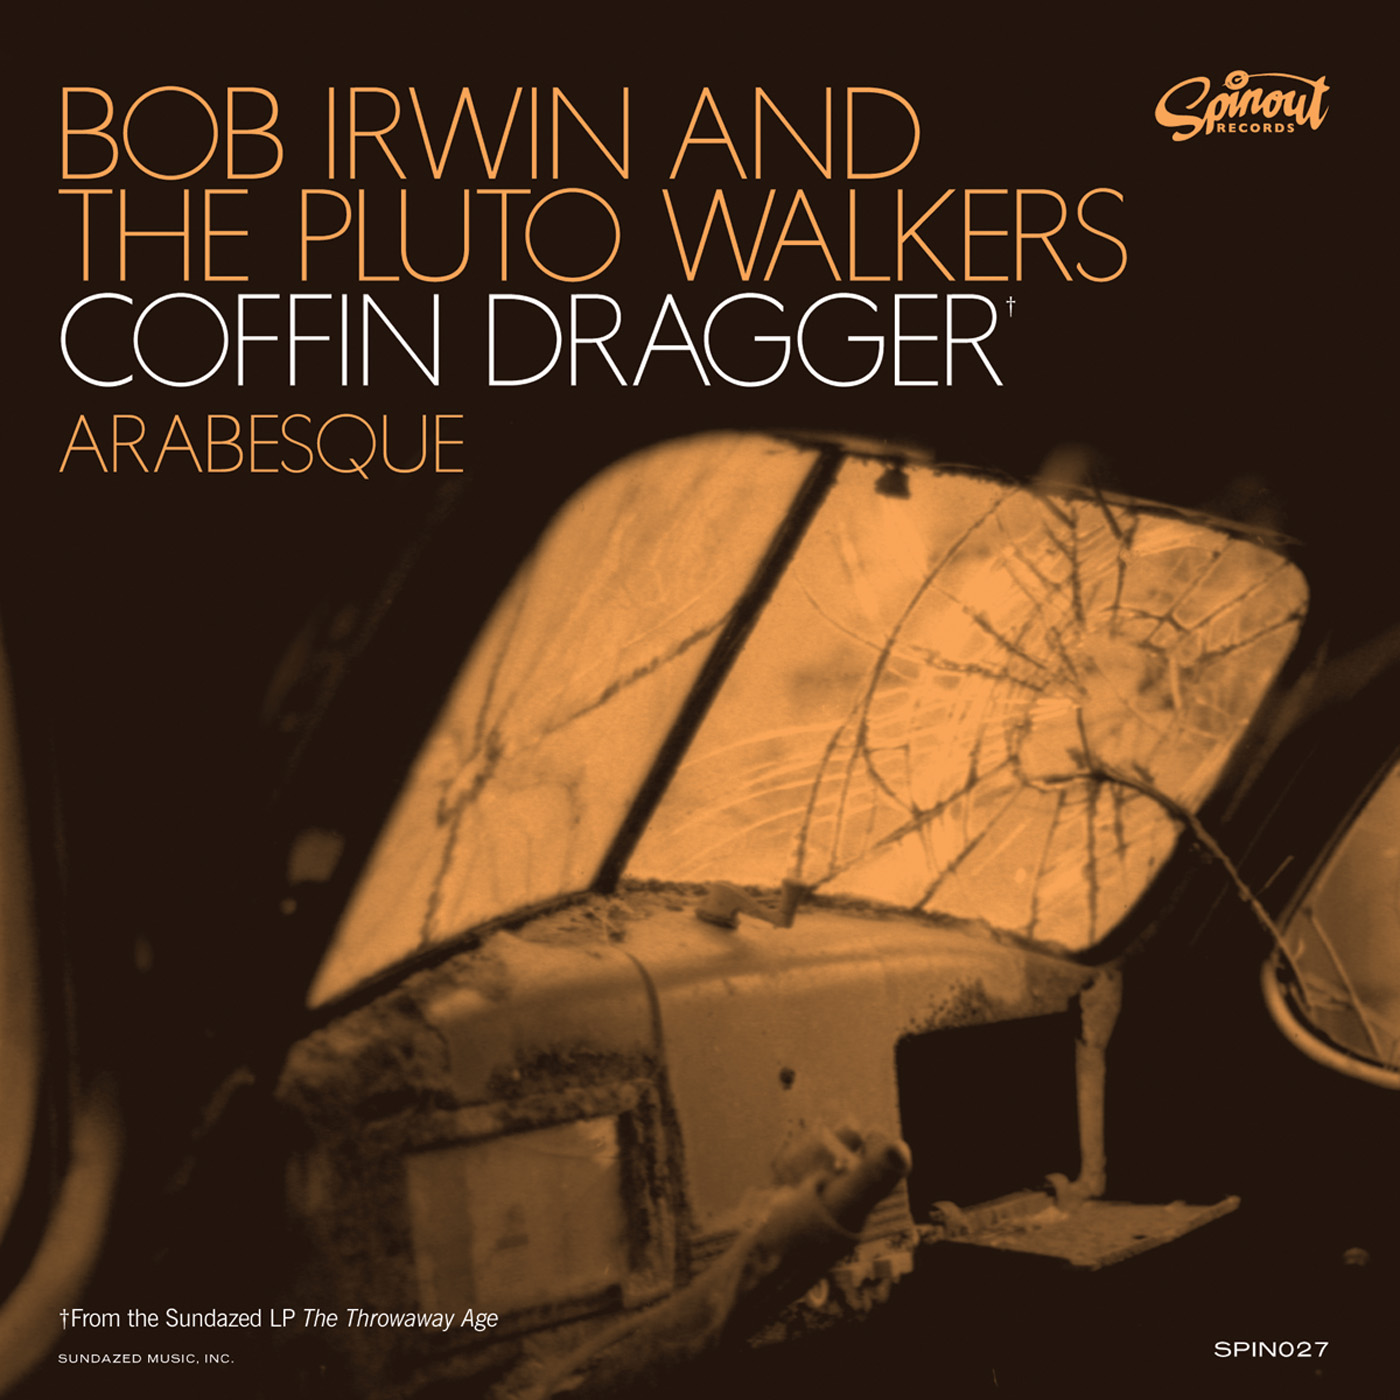 "Irwin, Bob and the Pluto Walkers - Coffin Dragger / Arabesque 7"" Single"